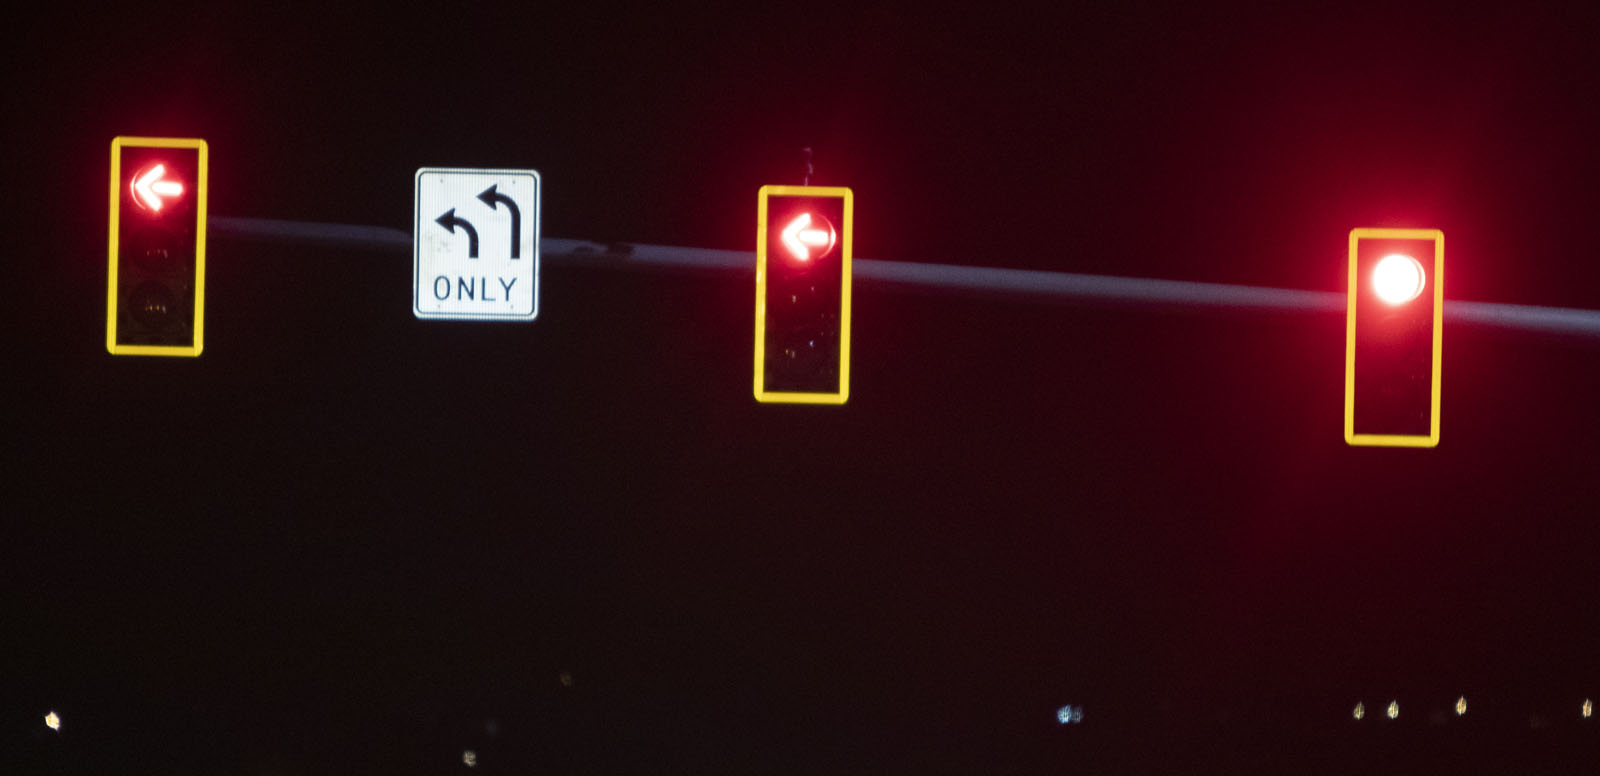 Three Traffic Signals with Retroreflective Yellow Borders